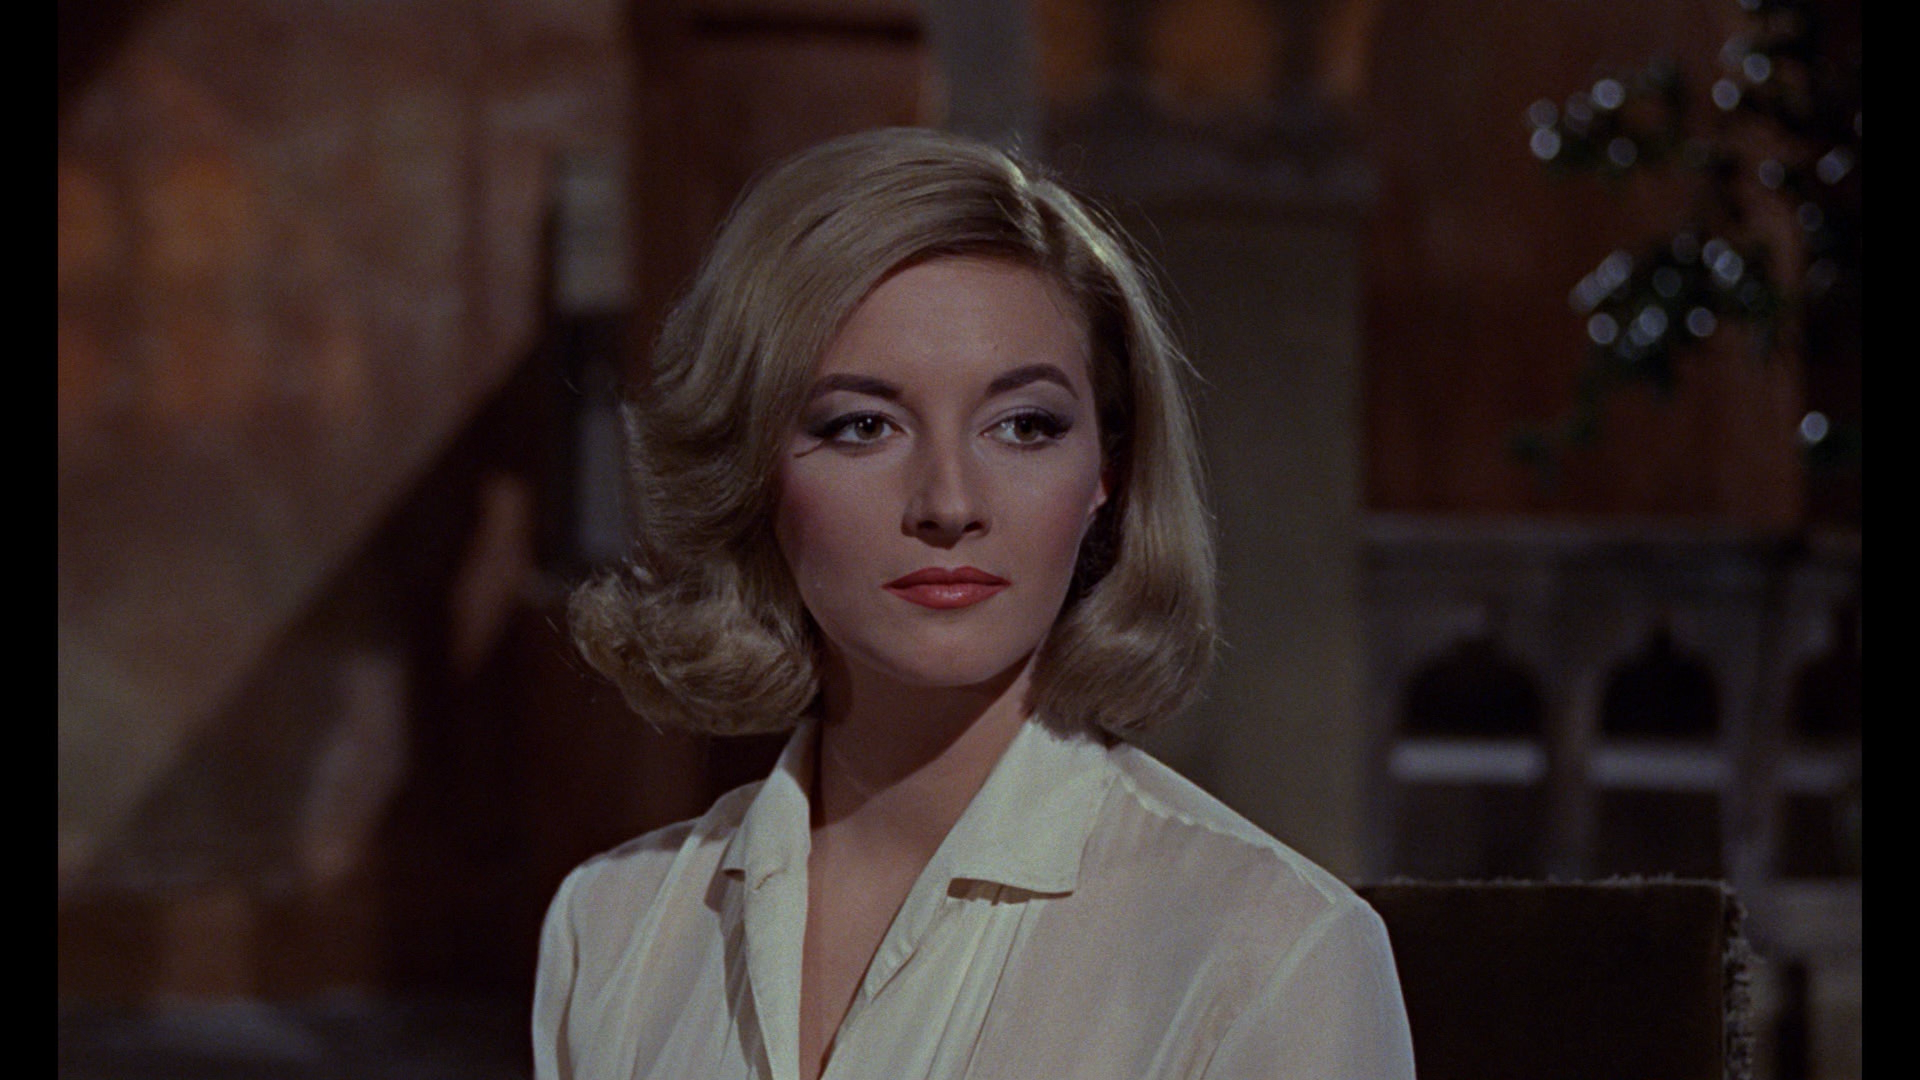 From Russia With Love - Daniela Bianchi